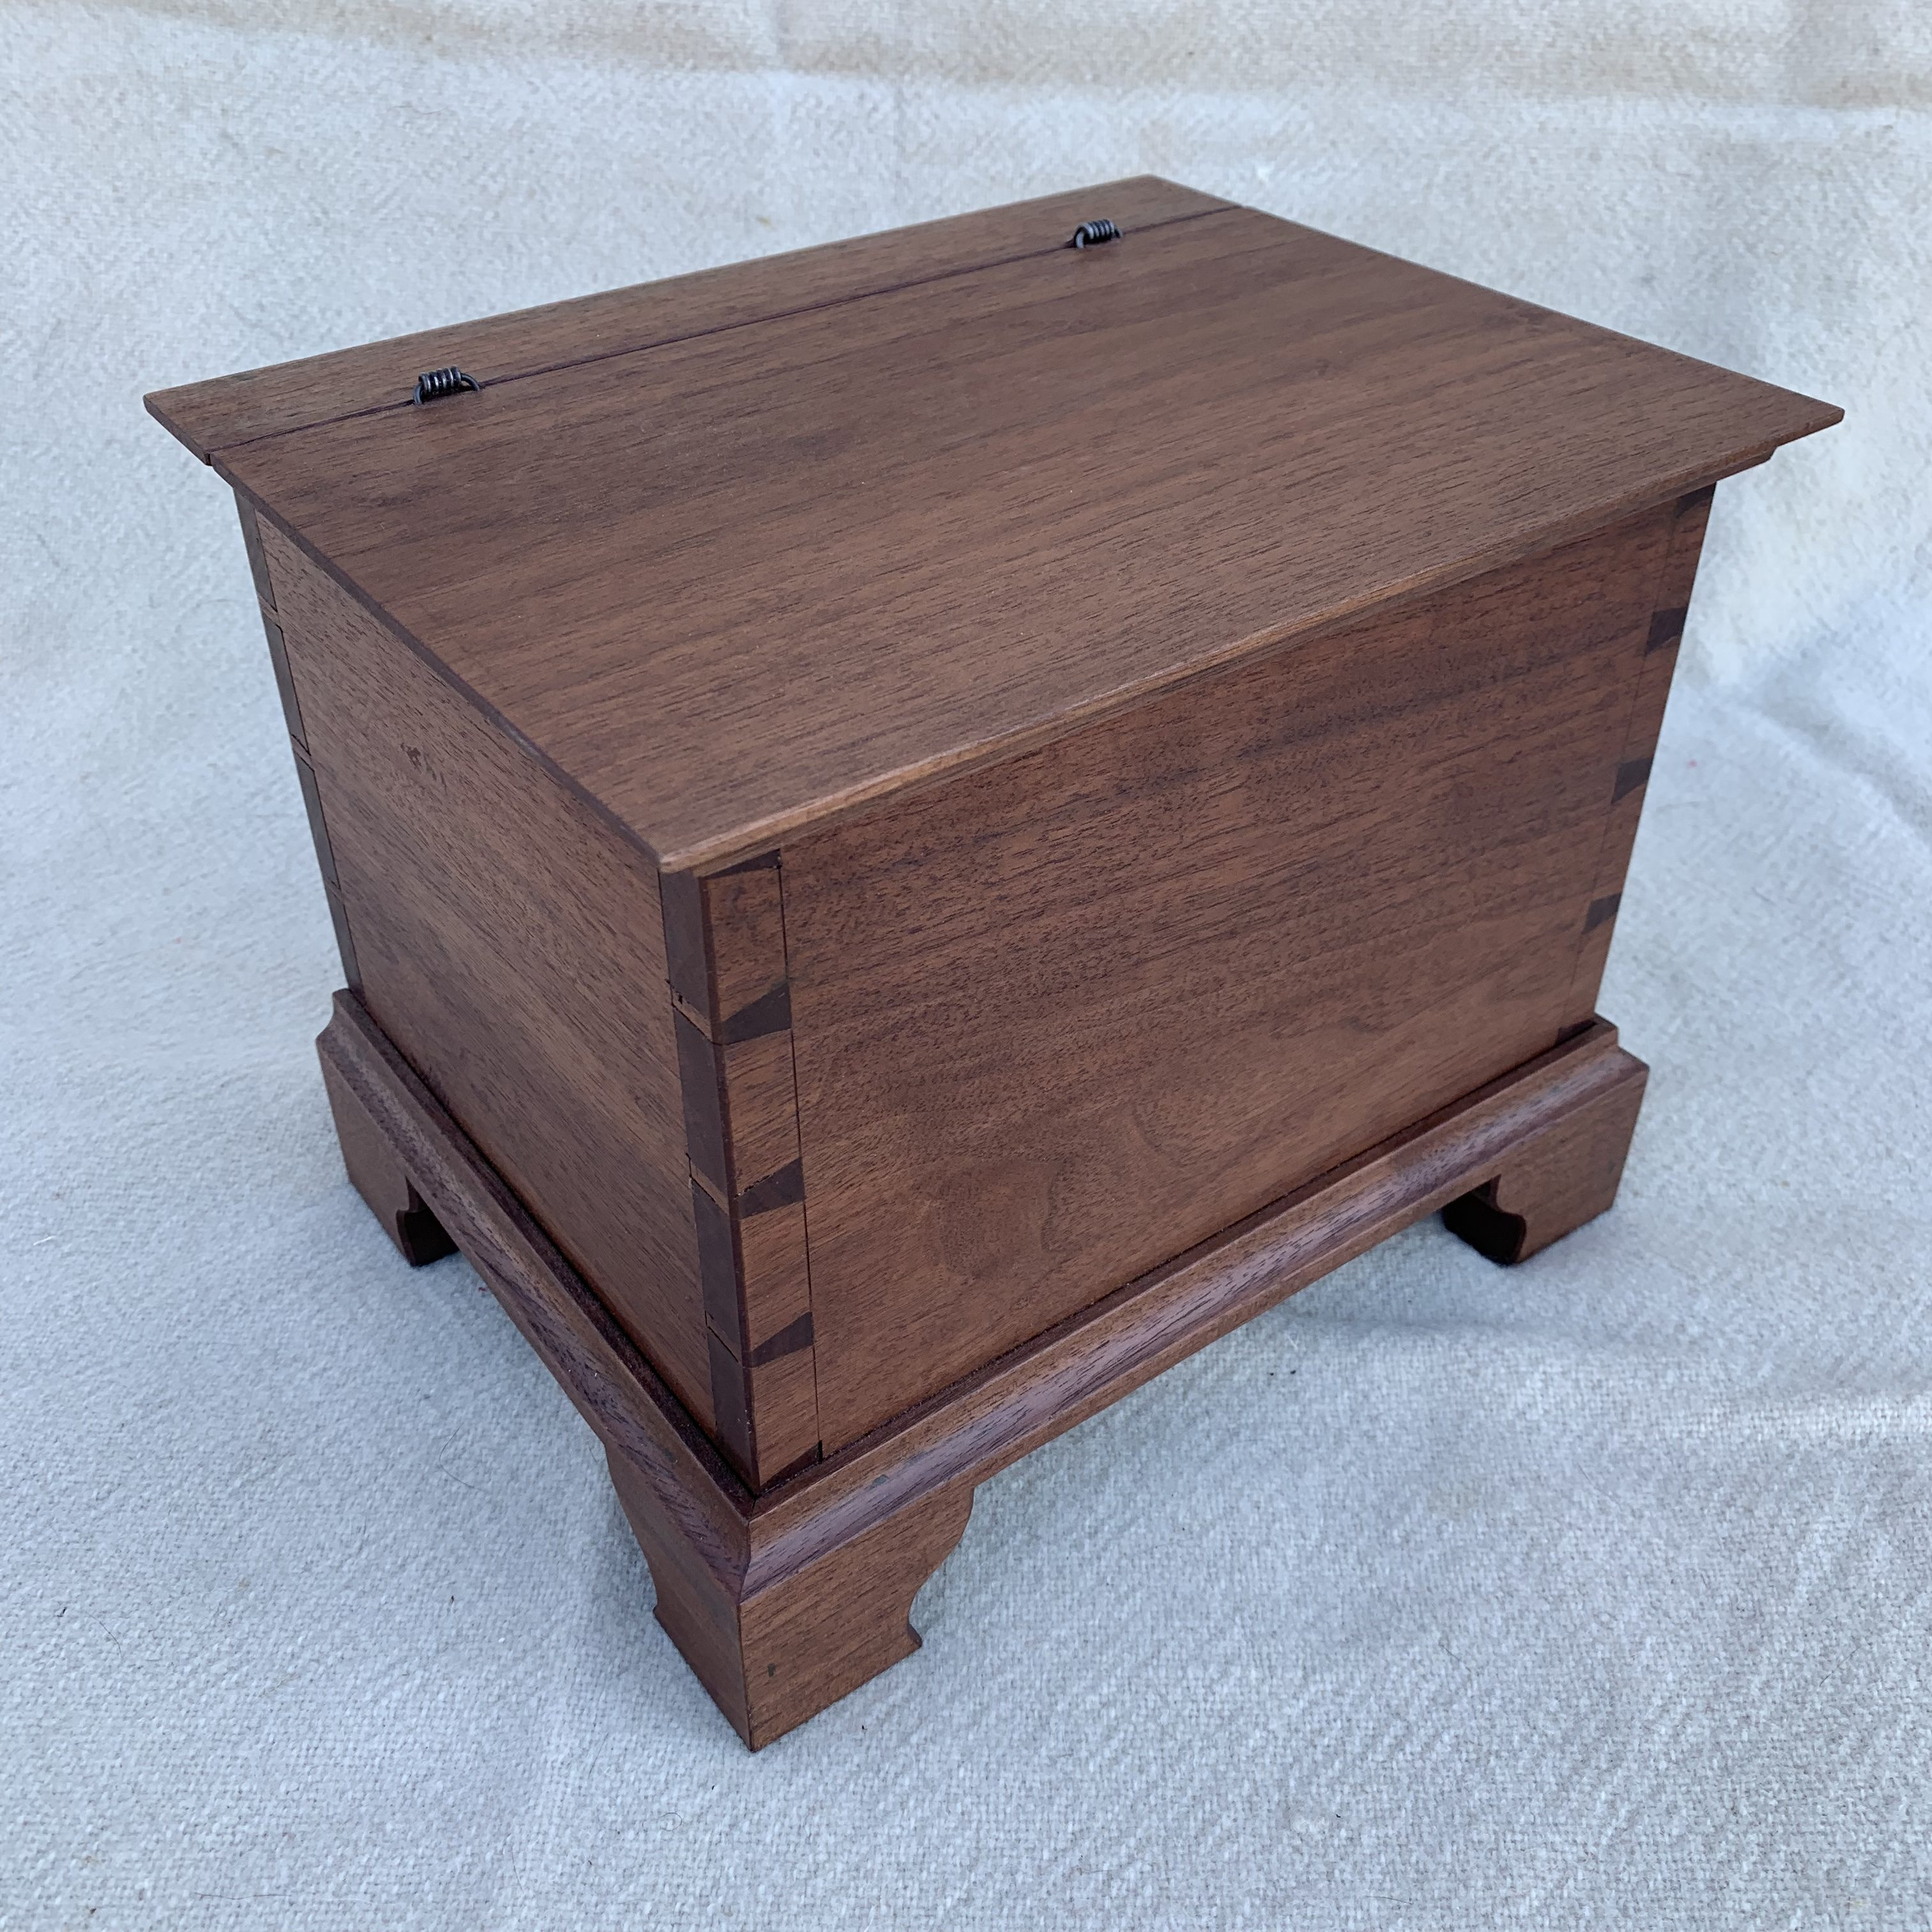 Table box